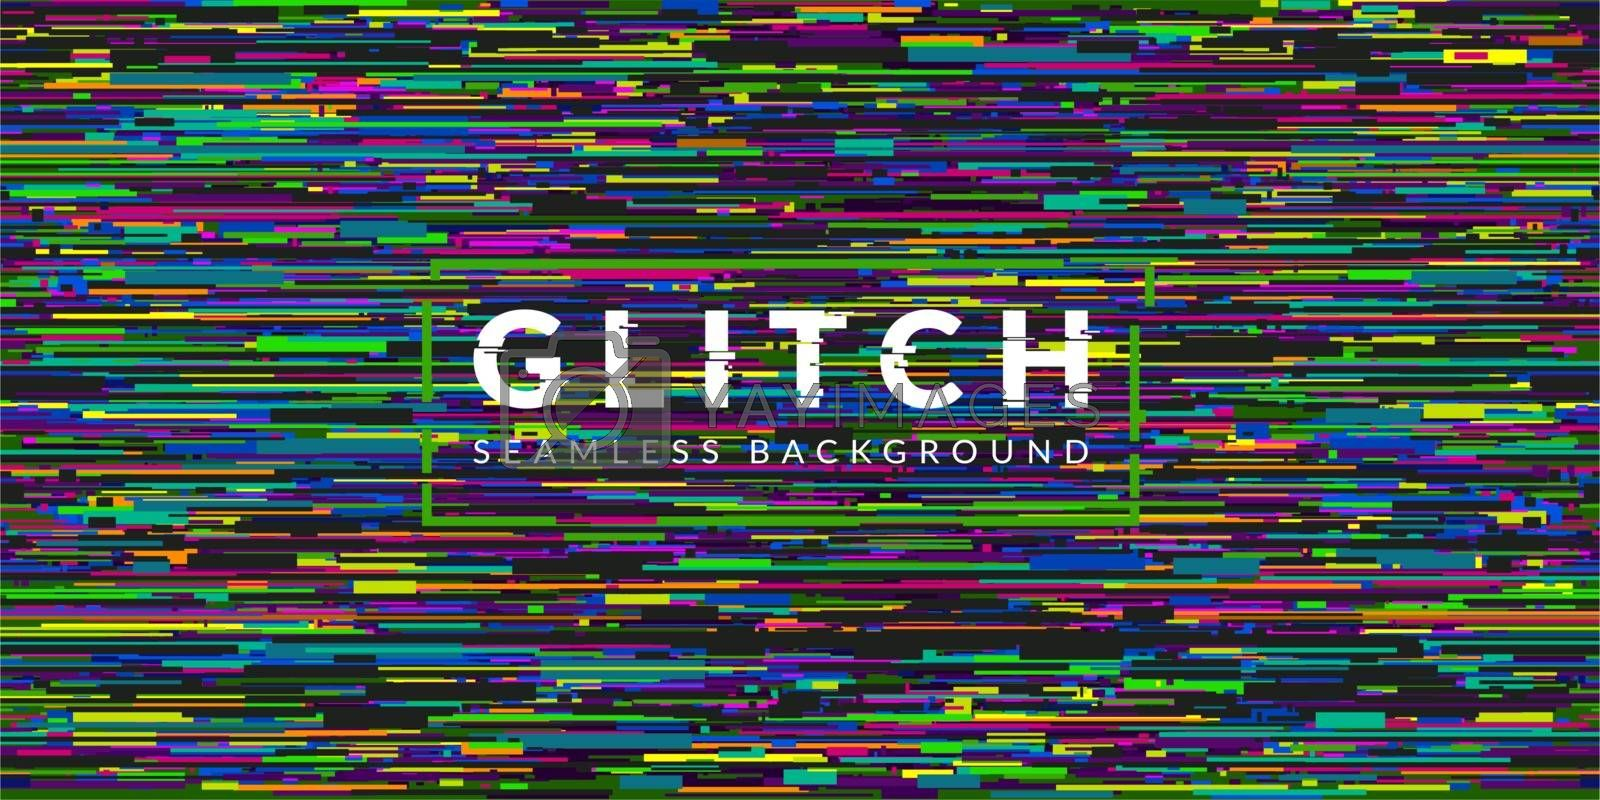 Cyber Glitch Abstract Seamless Pattern Vector Illustration Geometric Background Art. Vector illustration